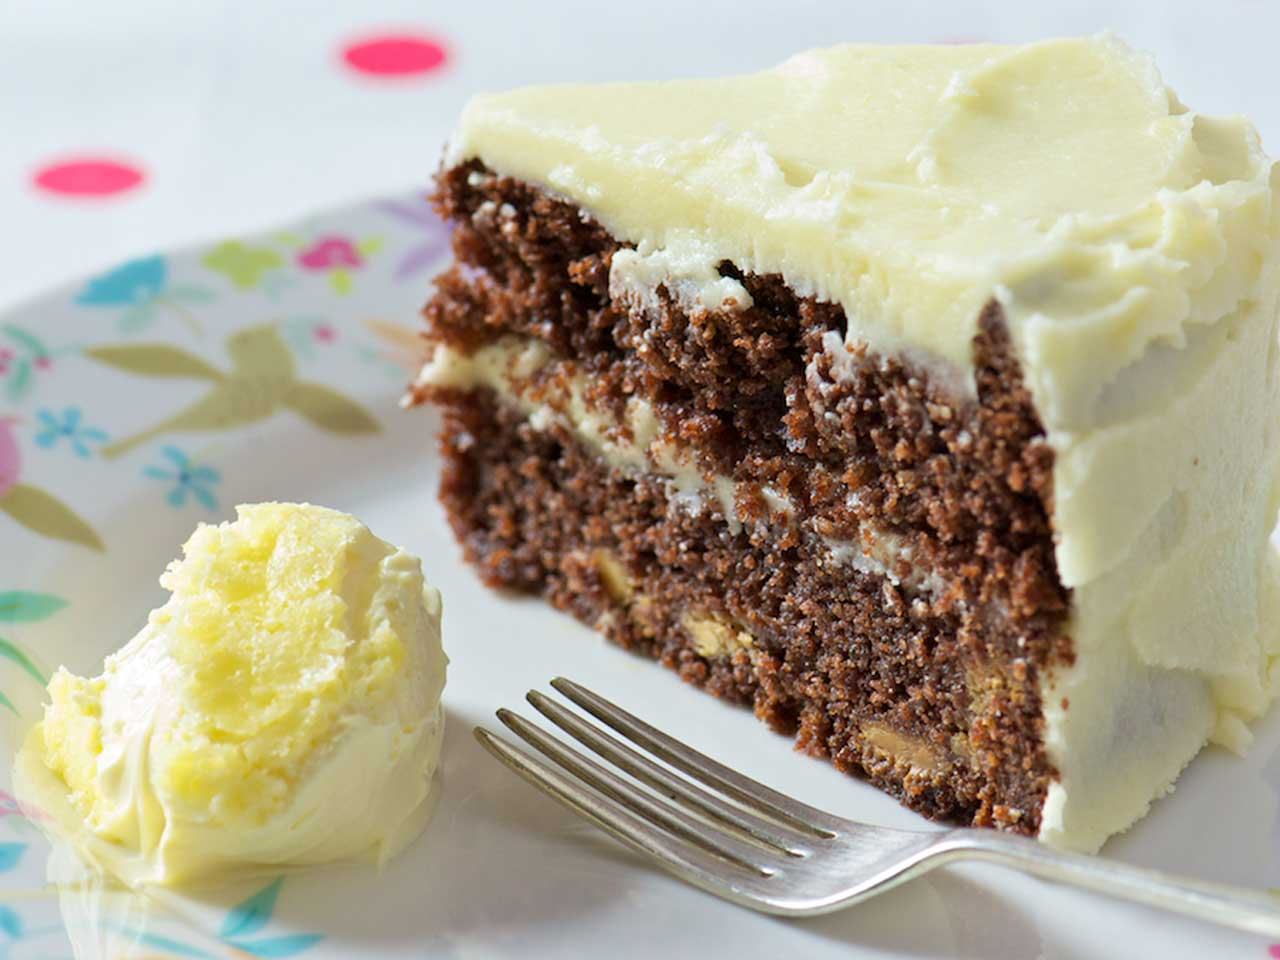 Double chocolate cake with clotted cream